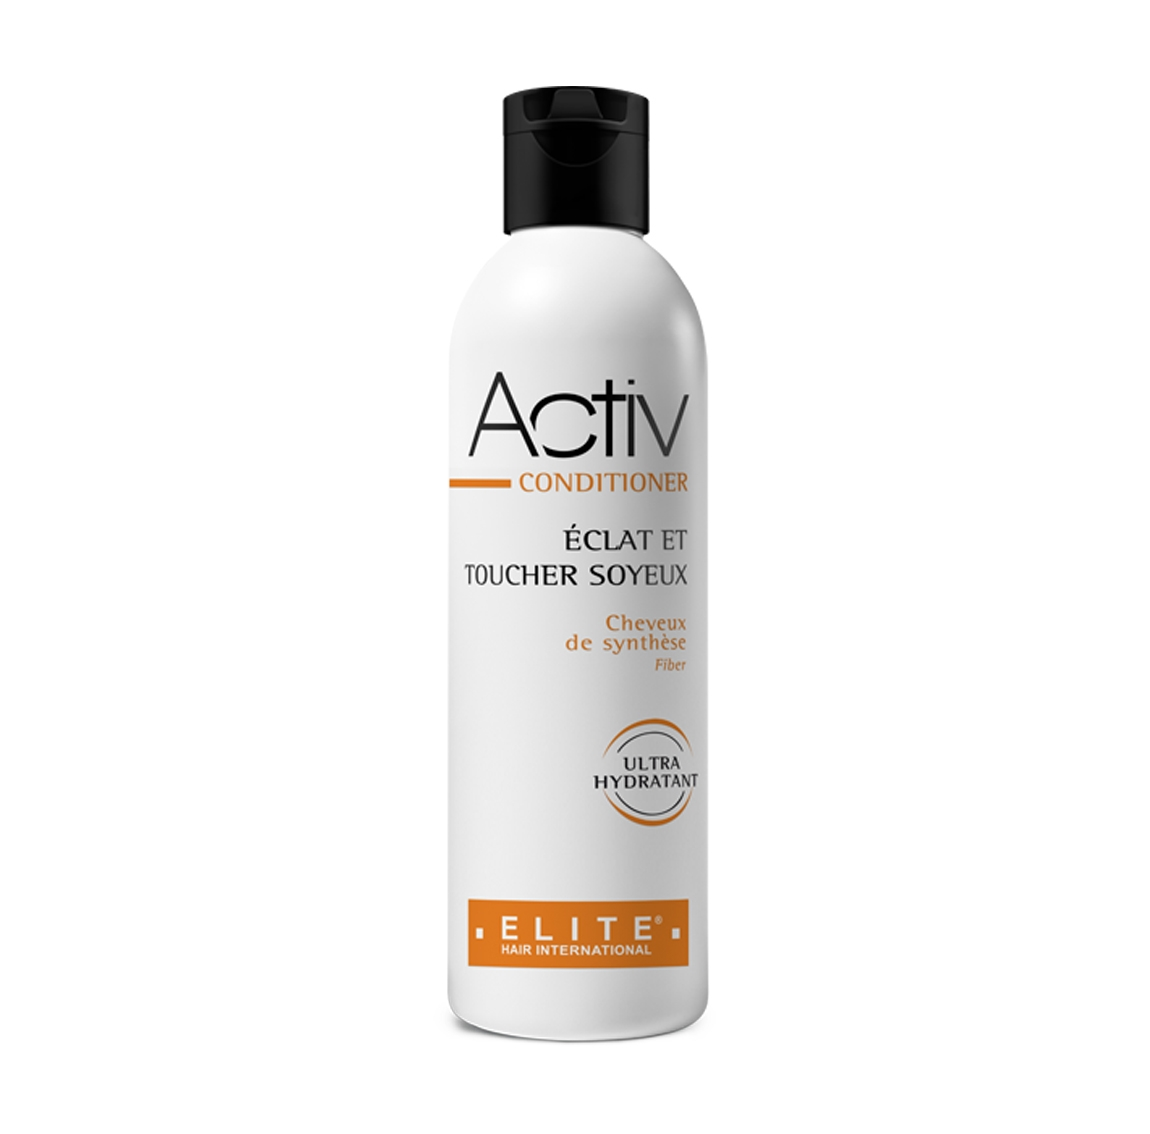 Activ conditioner, entretien perruque synthétique, elite hair international